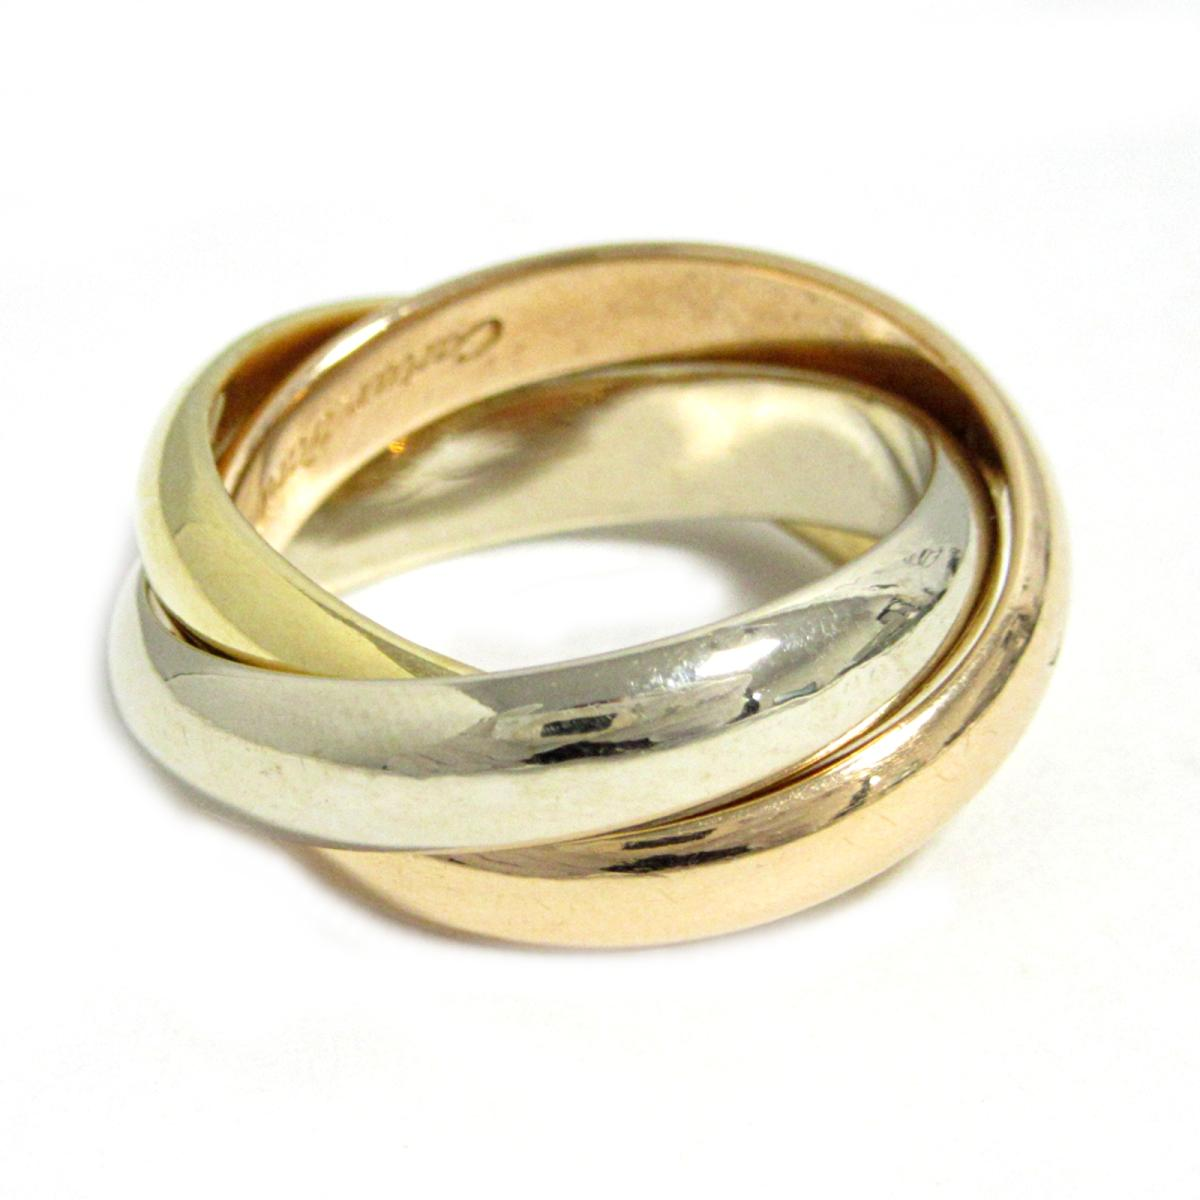 7e9e5b0f12e6b Auth Cartier Trinity Ring Band Ring 18K Tri Color Gold #49 Used Vintage    BRANDOFF Ginza/TOKYO/Japan